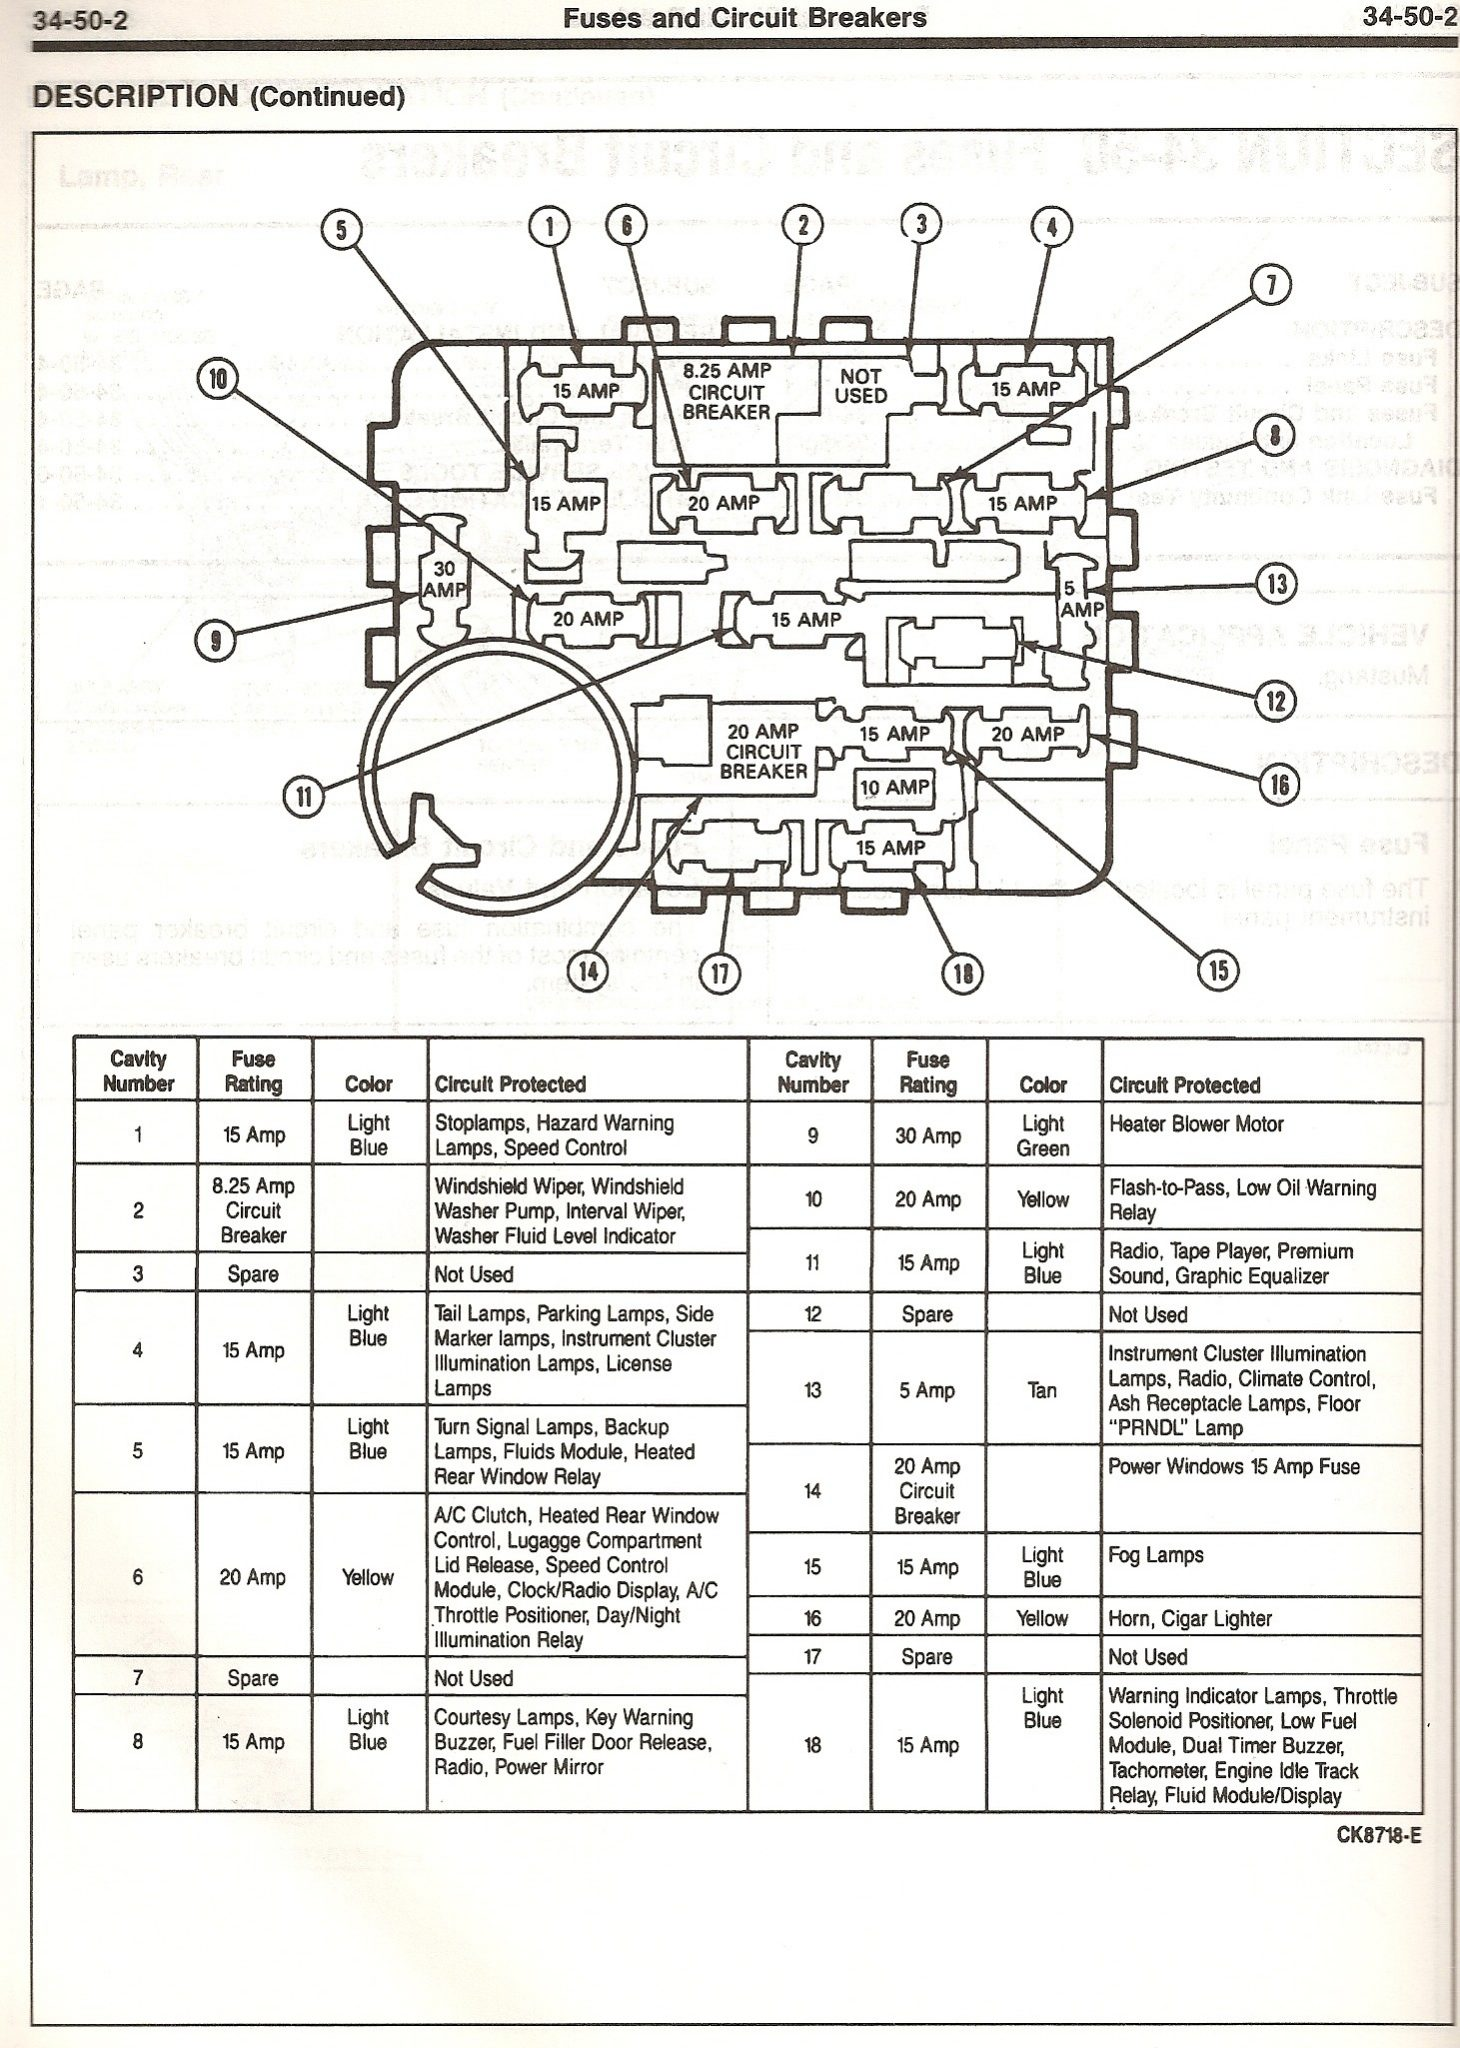 1984 f150 wiring diagram online with Diagram Of Fuse Box For 87 Ford Mustang on Spyder Halo Lights Wiring Diagram further Ford Ranger Fuse Box Location as well Reddy Heater 50r Wiring Diagram moreover Wiring Diagram 1992 Buick Regal further Schematics h.